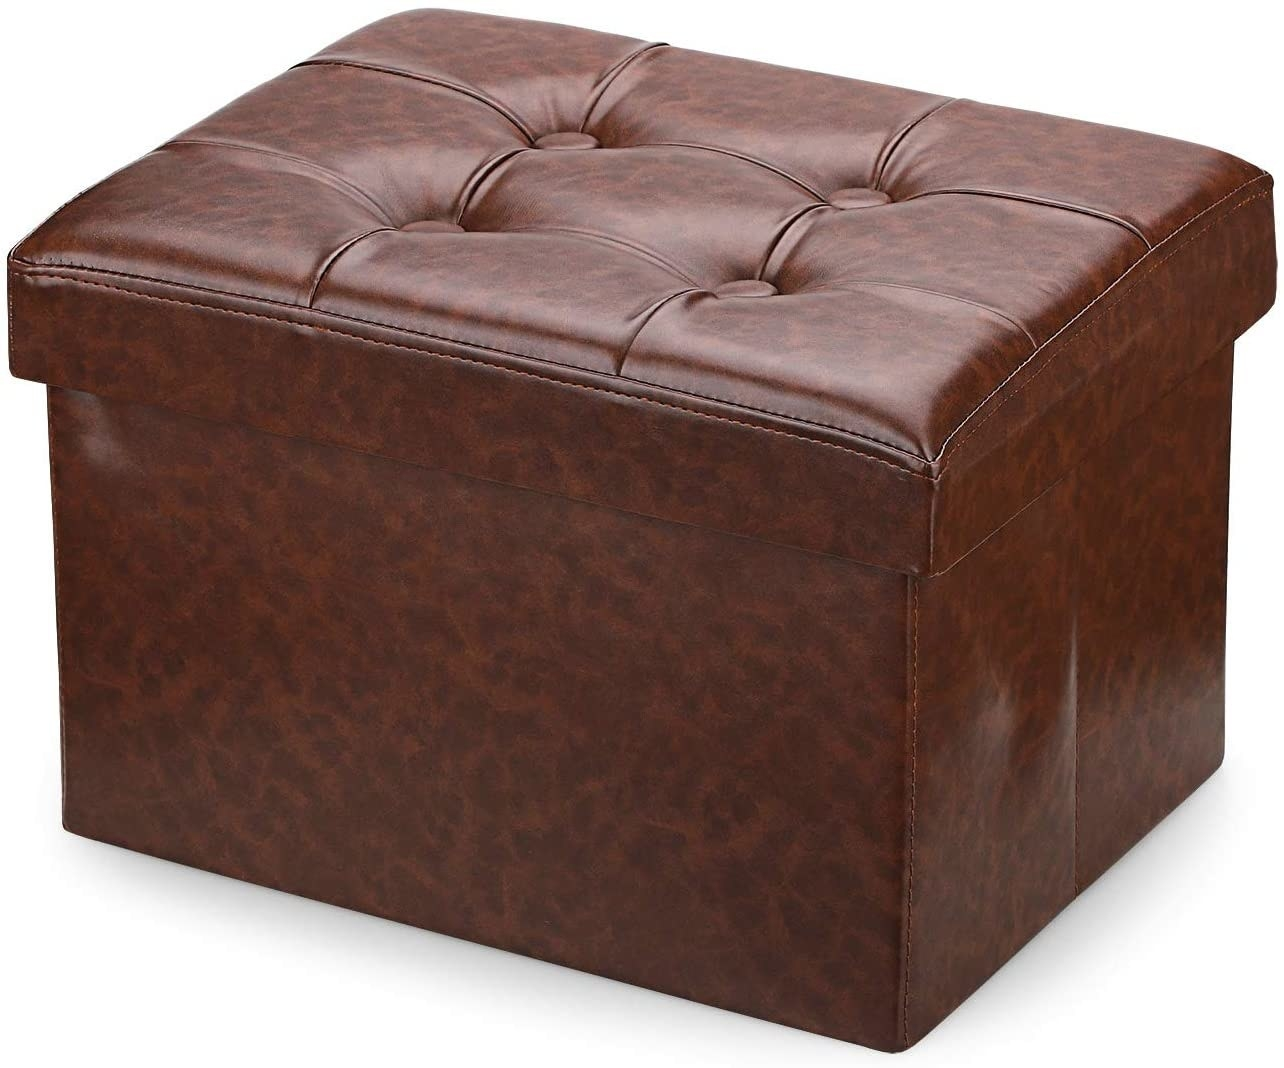 The square shaped ottoman in faux brown leather